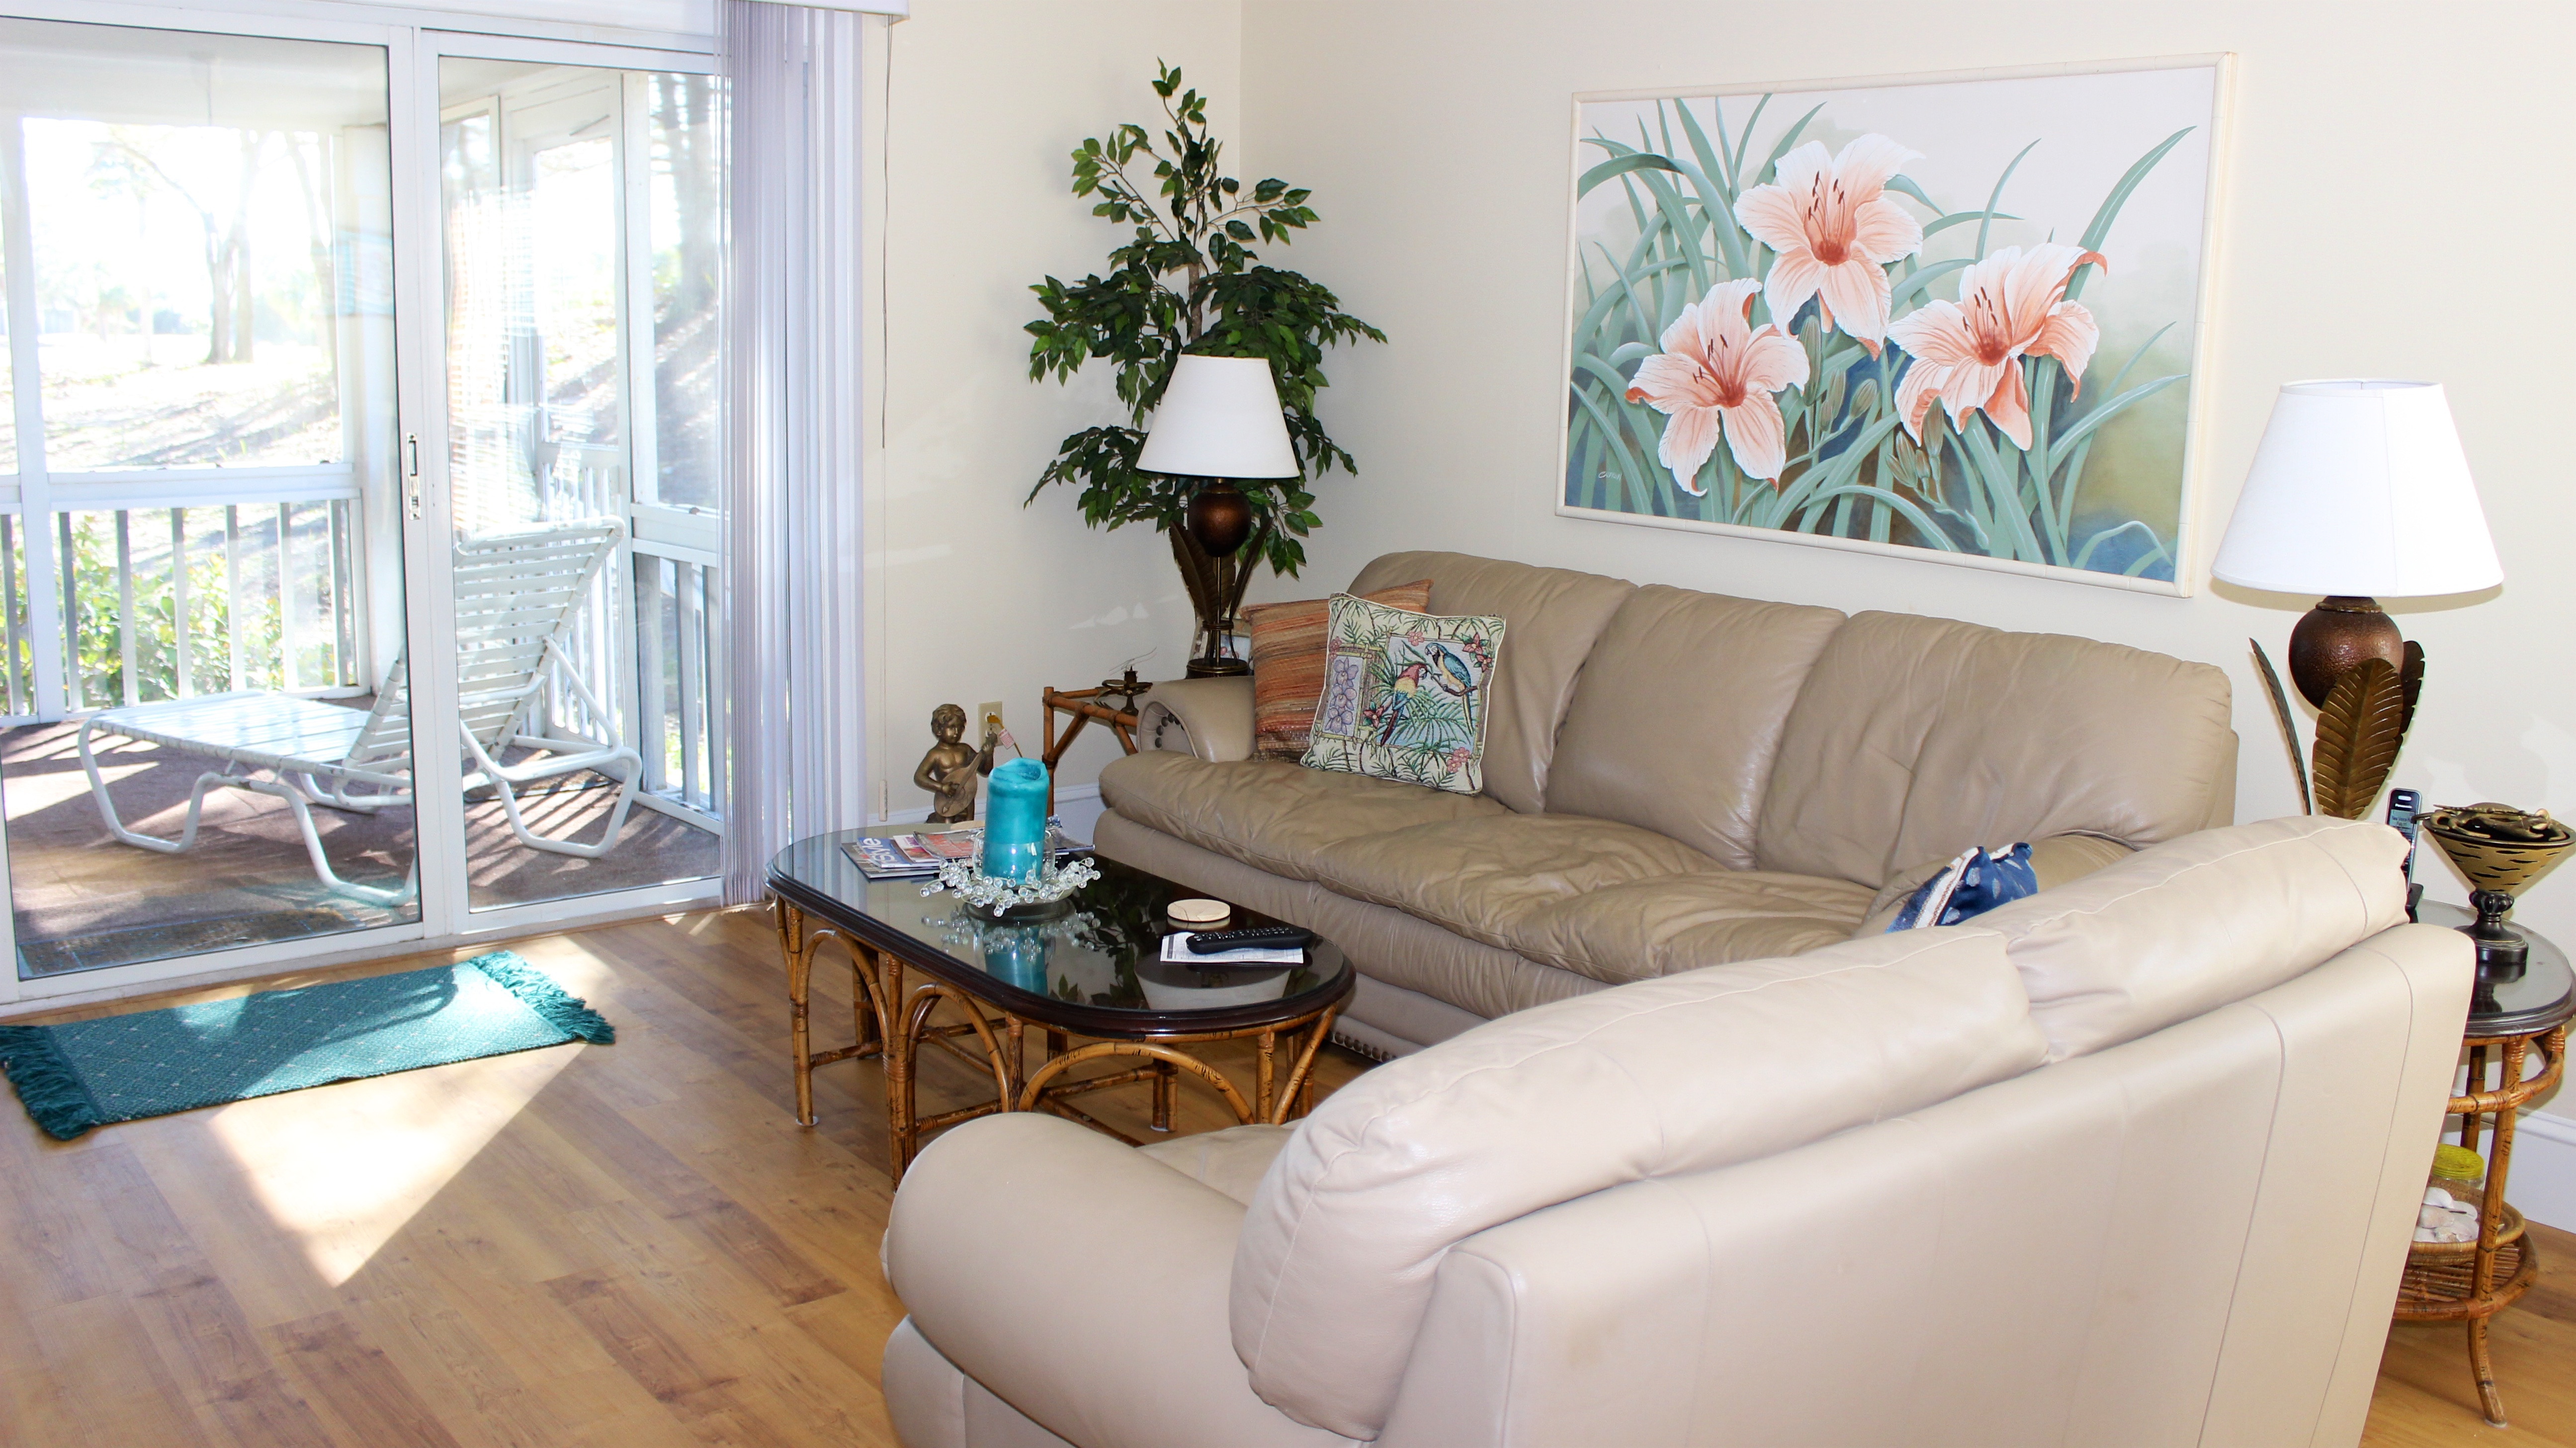 Light and spacious, features include hardwood floors and comfortable furniture.